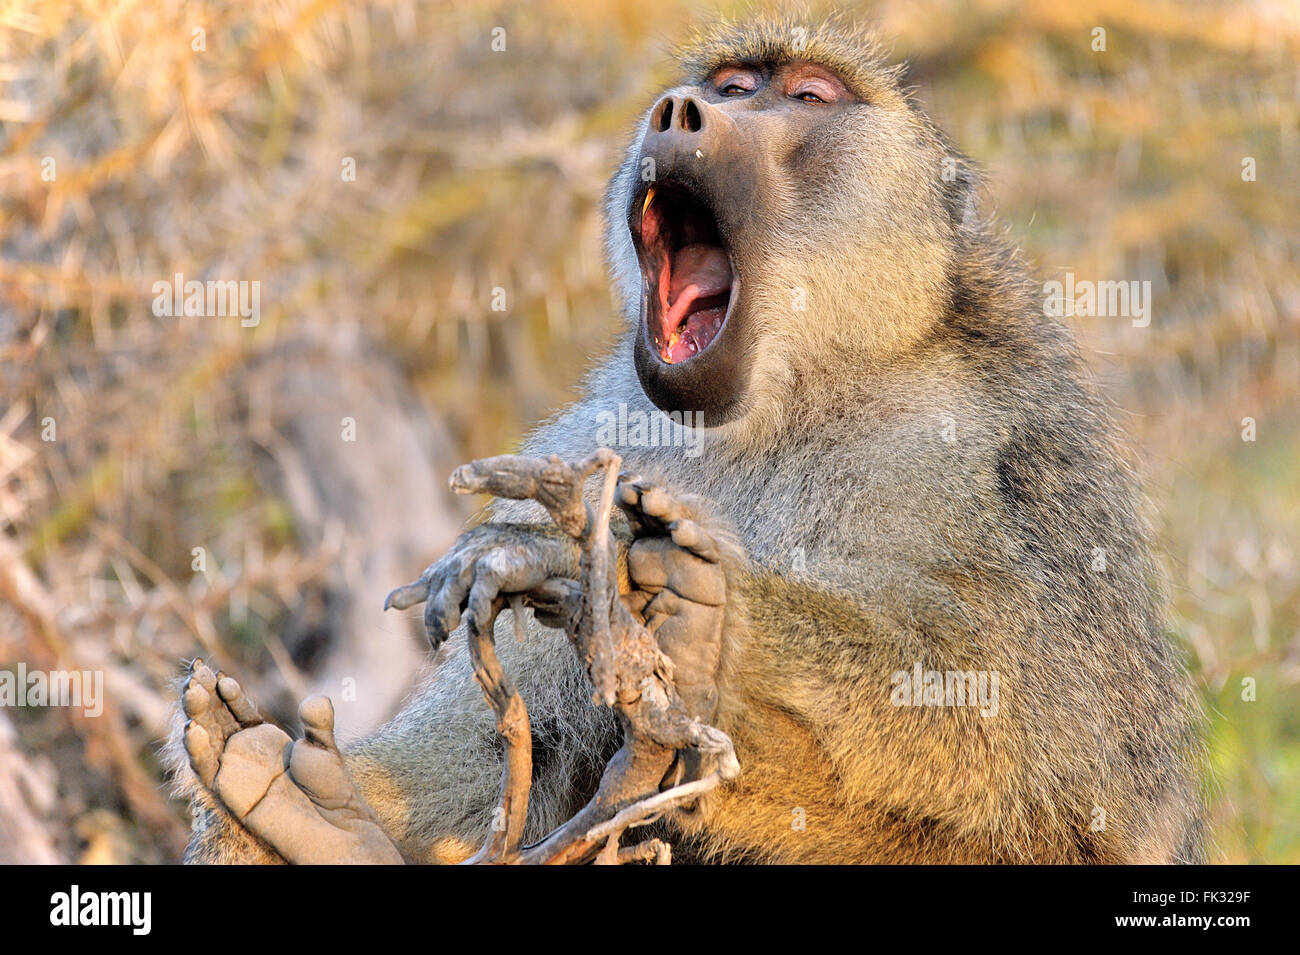 The Big Yawning of a Baboon, tiredness takes control - Stock Image